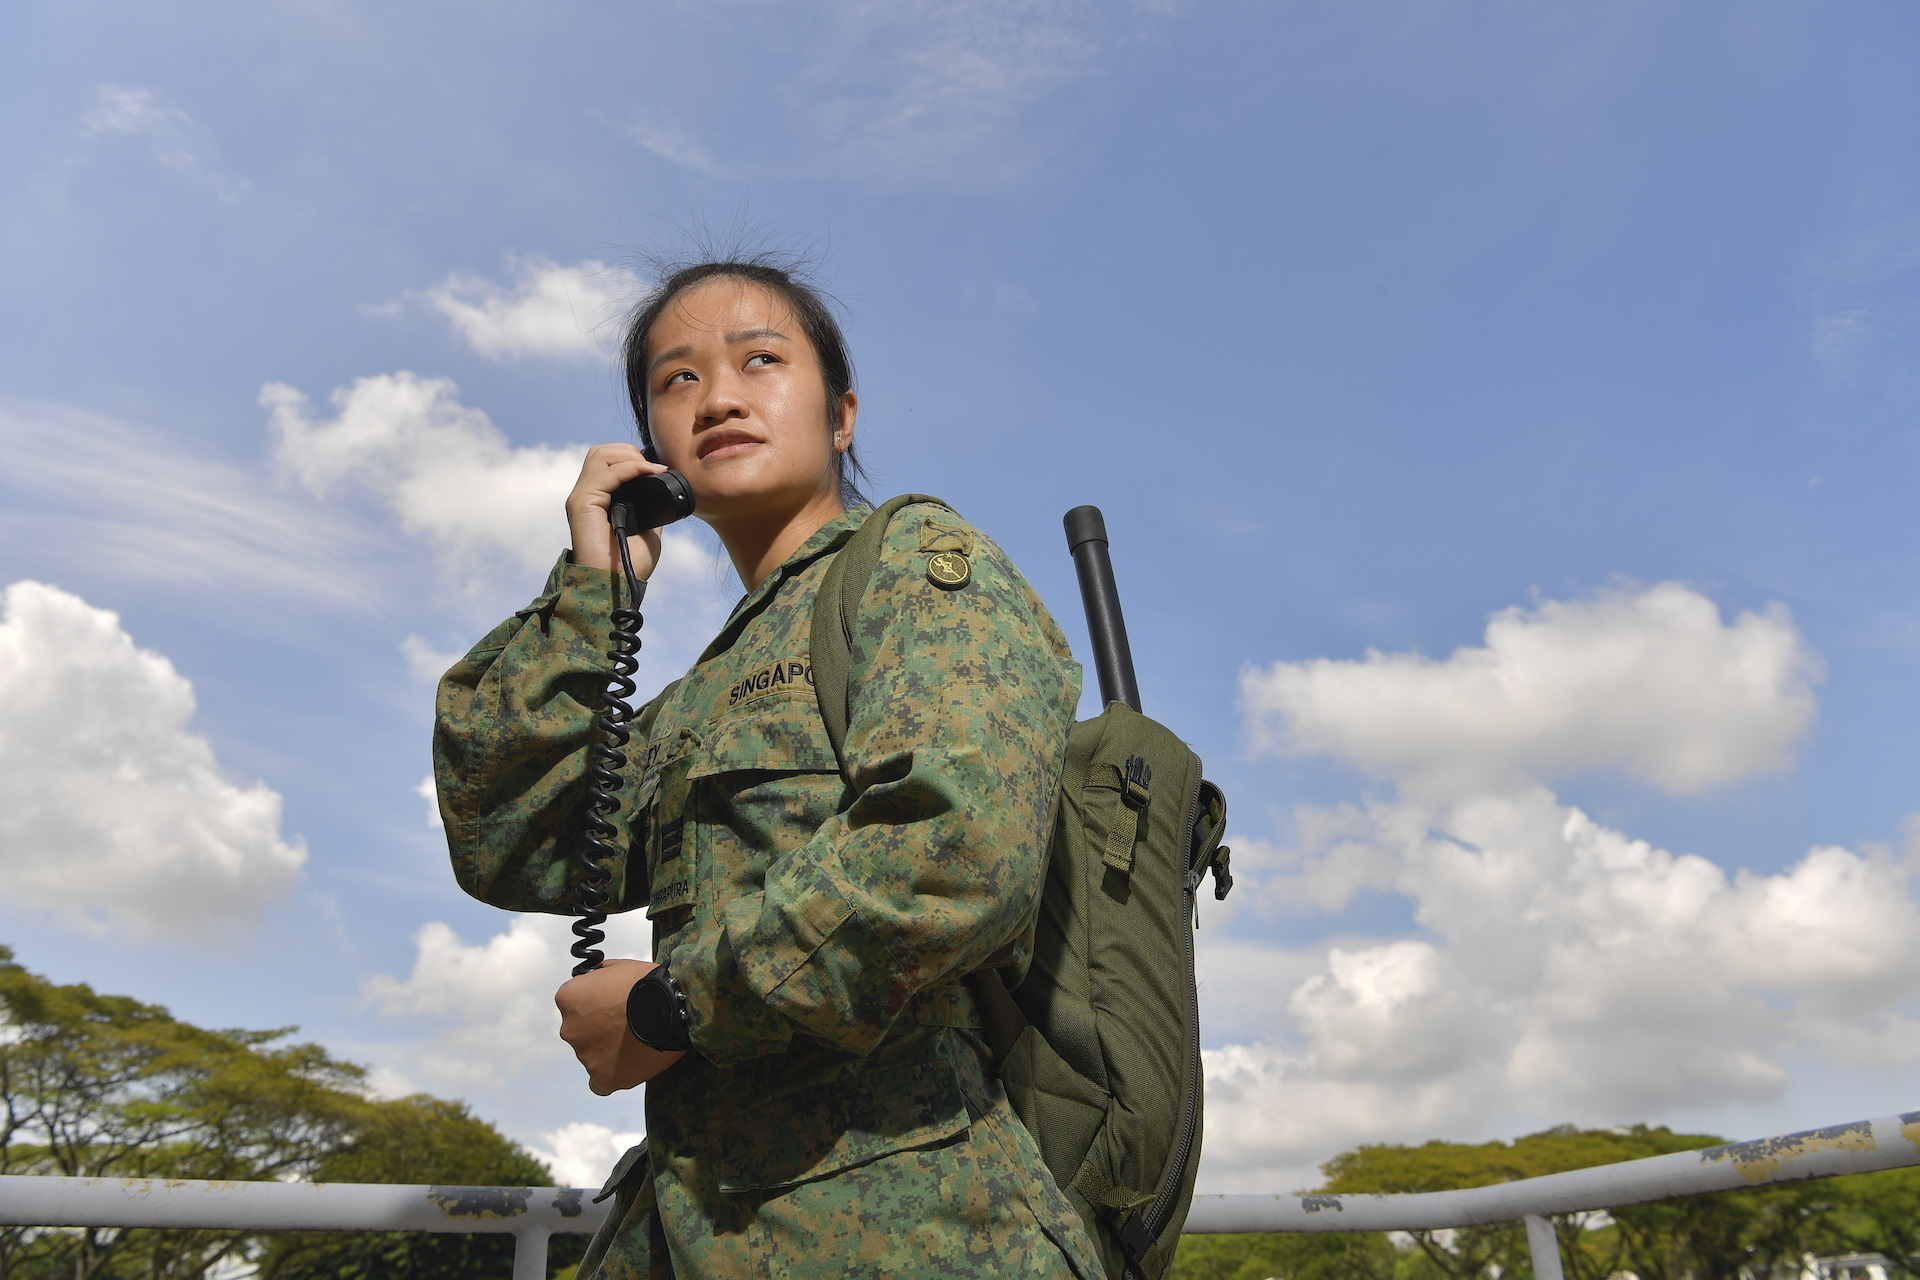 Meet the SAF's only female Ground Forward Air Controller